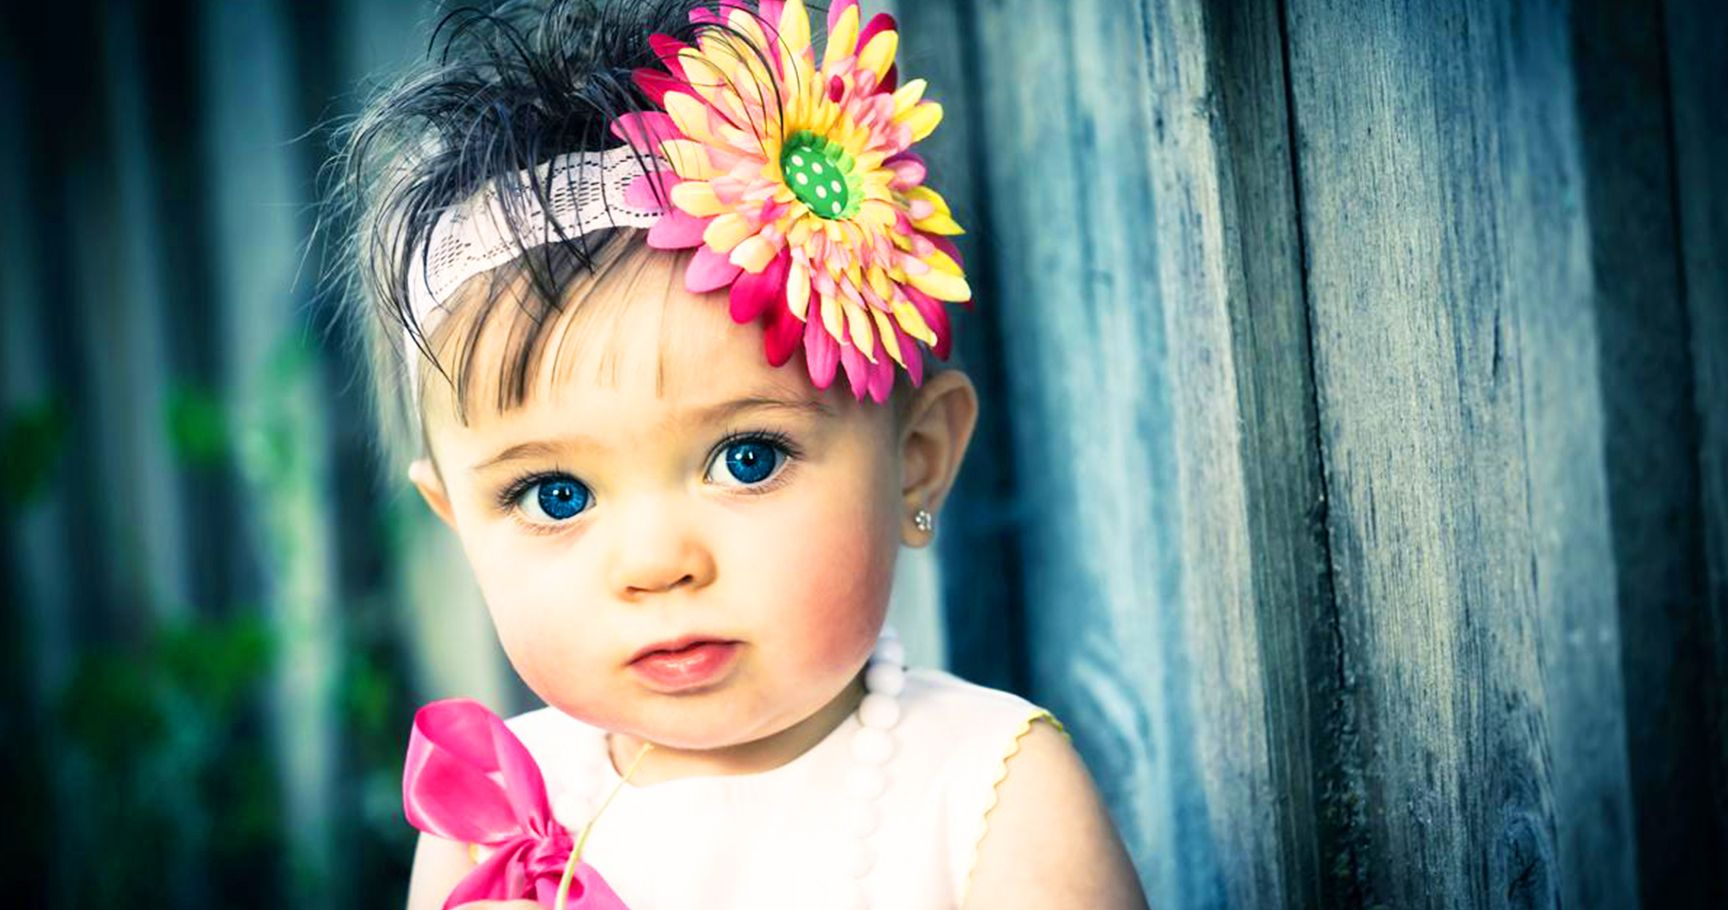 6afeed17c 30 Radiant Baby Girl Names That Will Make Her Stand Out